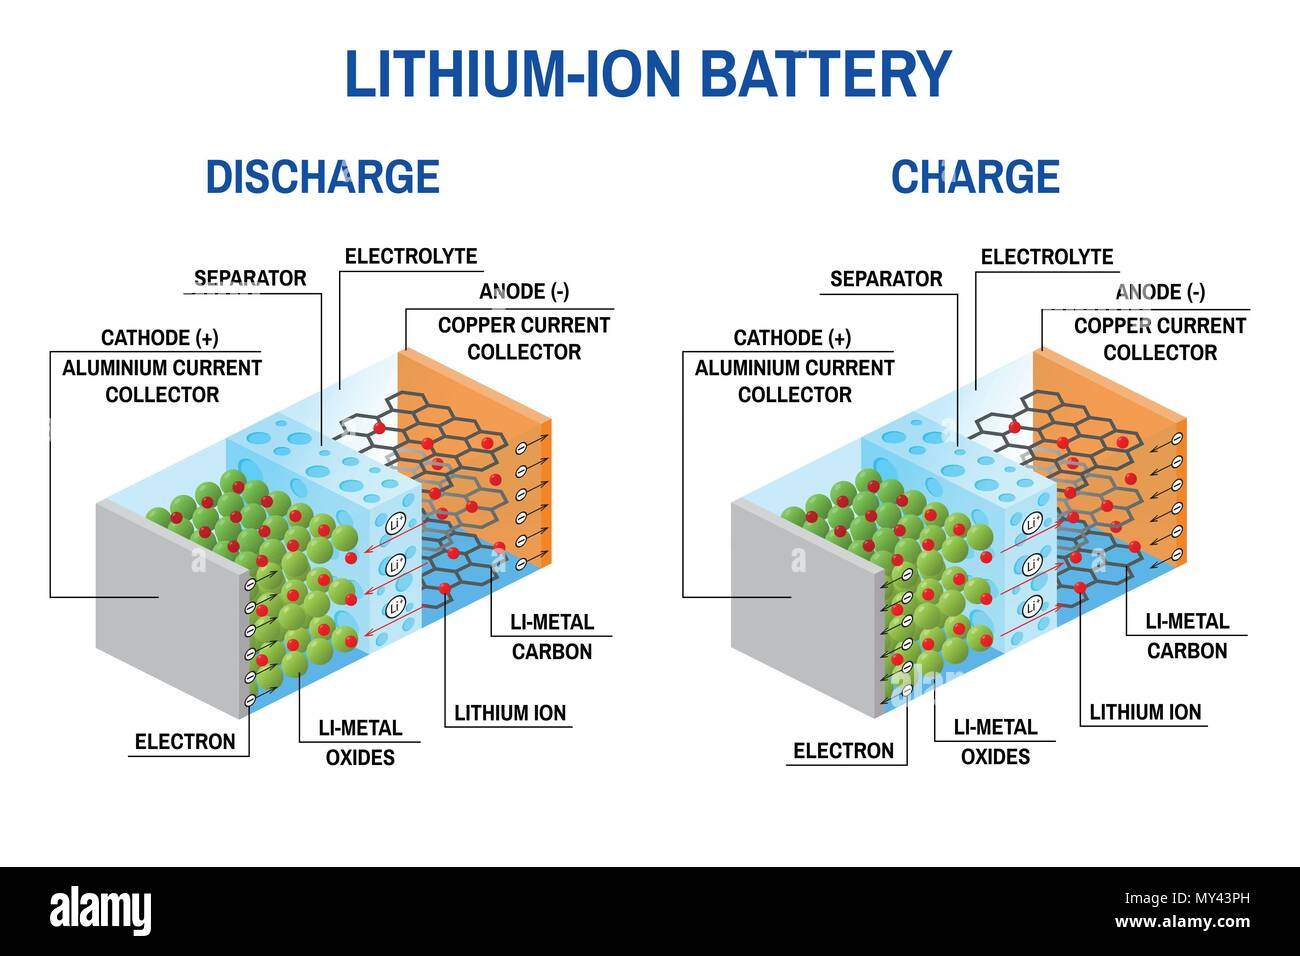 Li-ion battery diagram. Vector illustration. Rechargeable battery in which lithium ions move from the negative electrode to the positive electrode dur - Stock Image